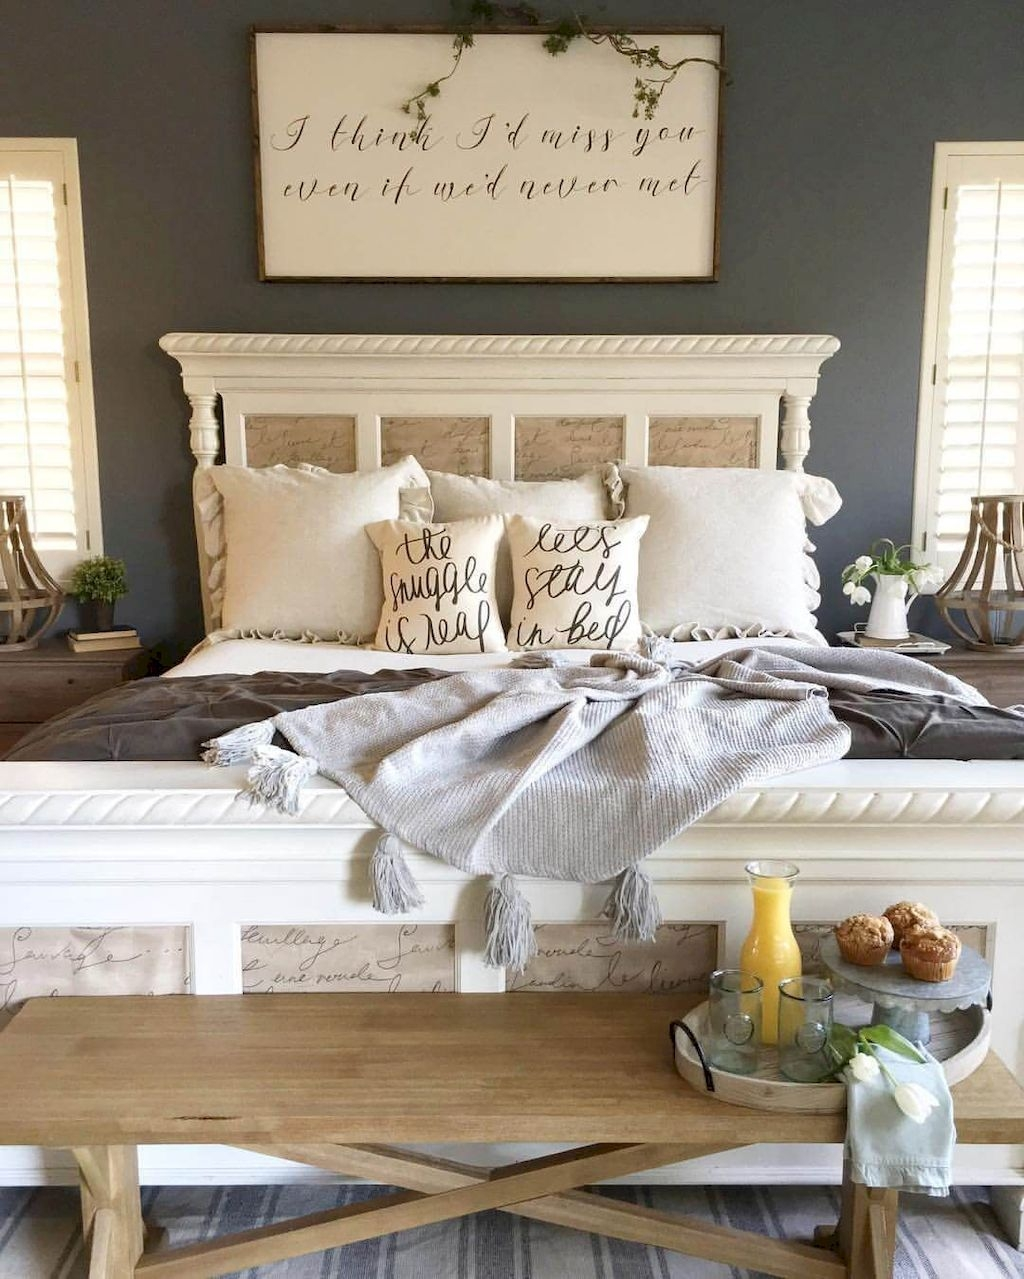 41 cool modern farmhouse bedroom decor ideas painting of bed